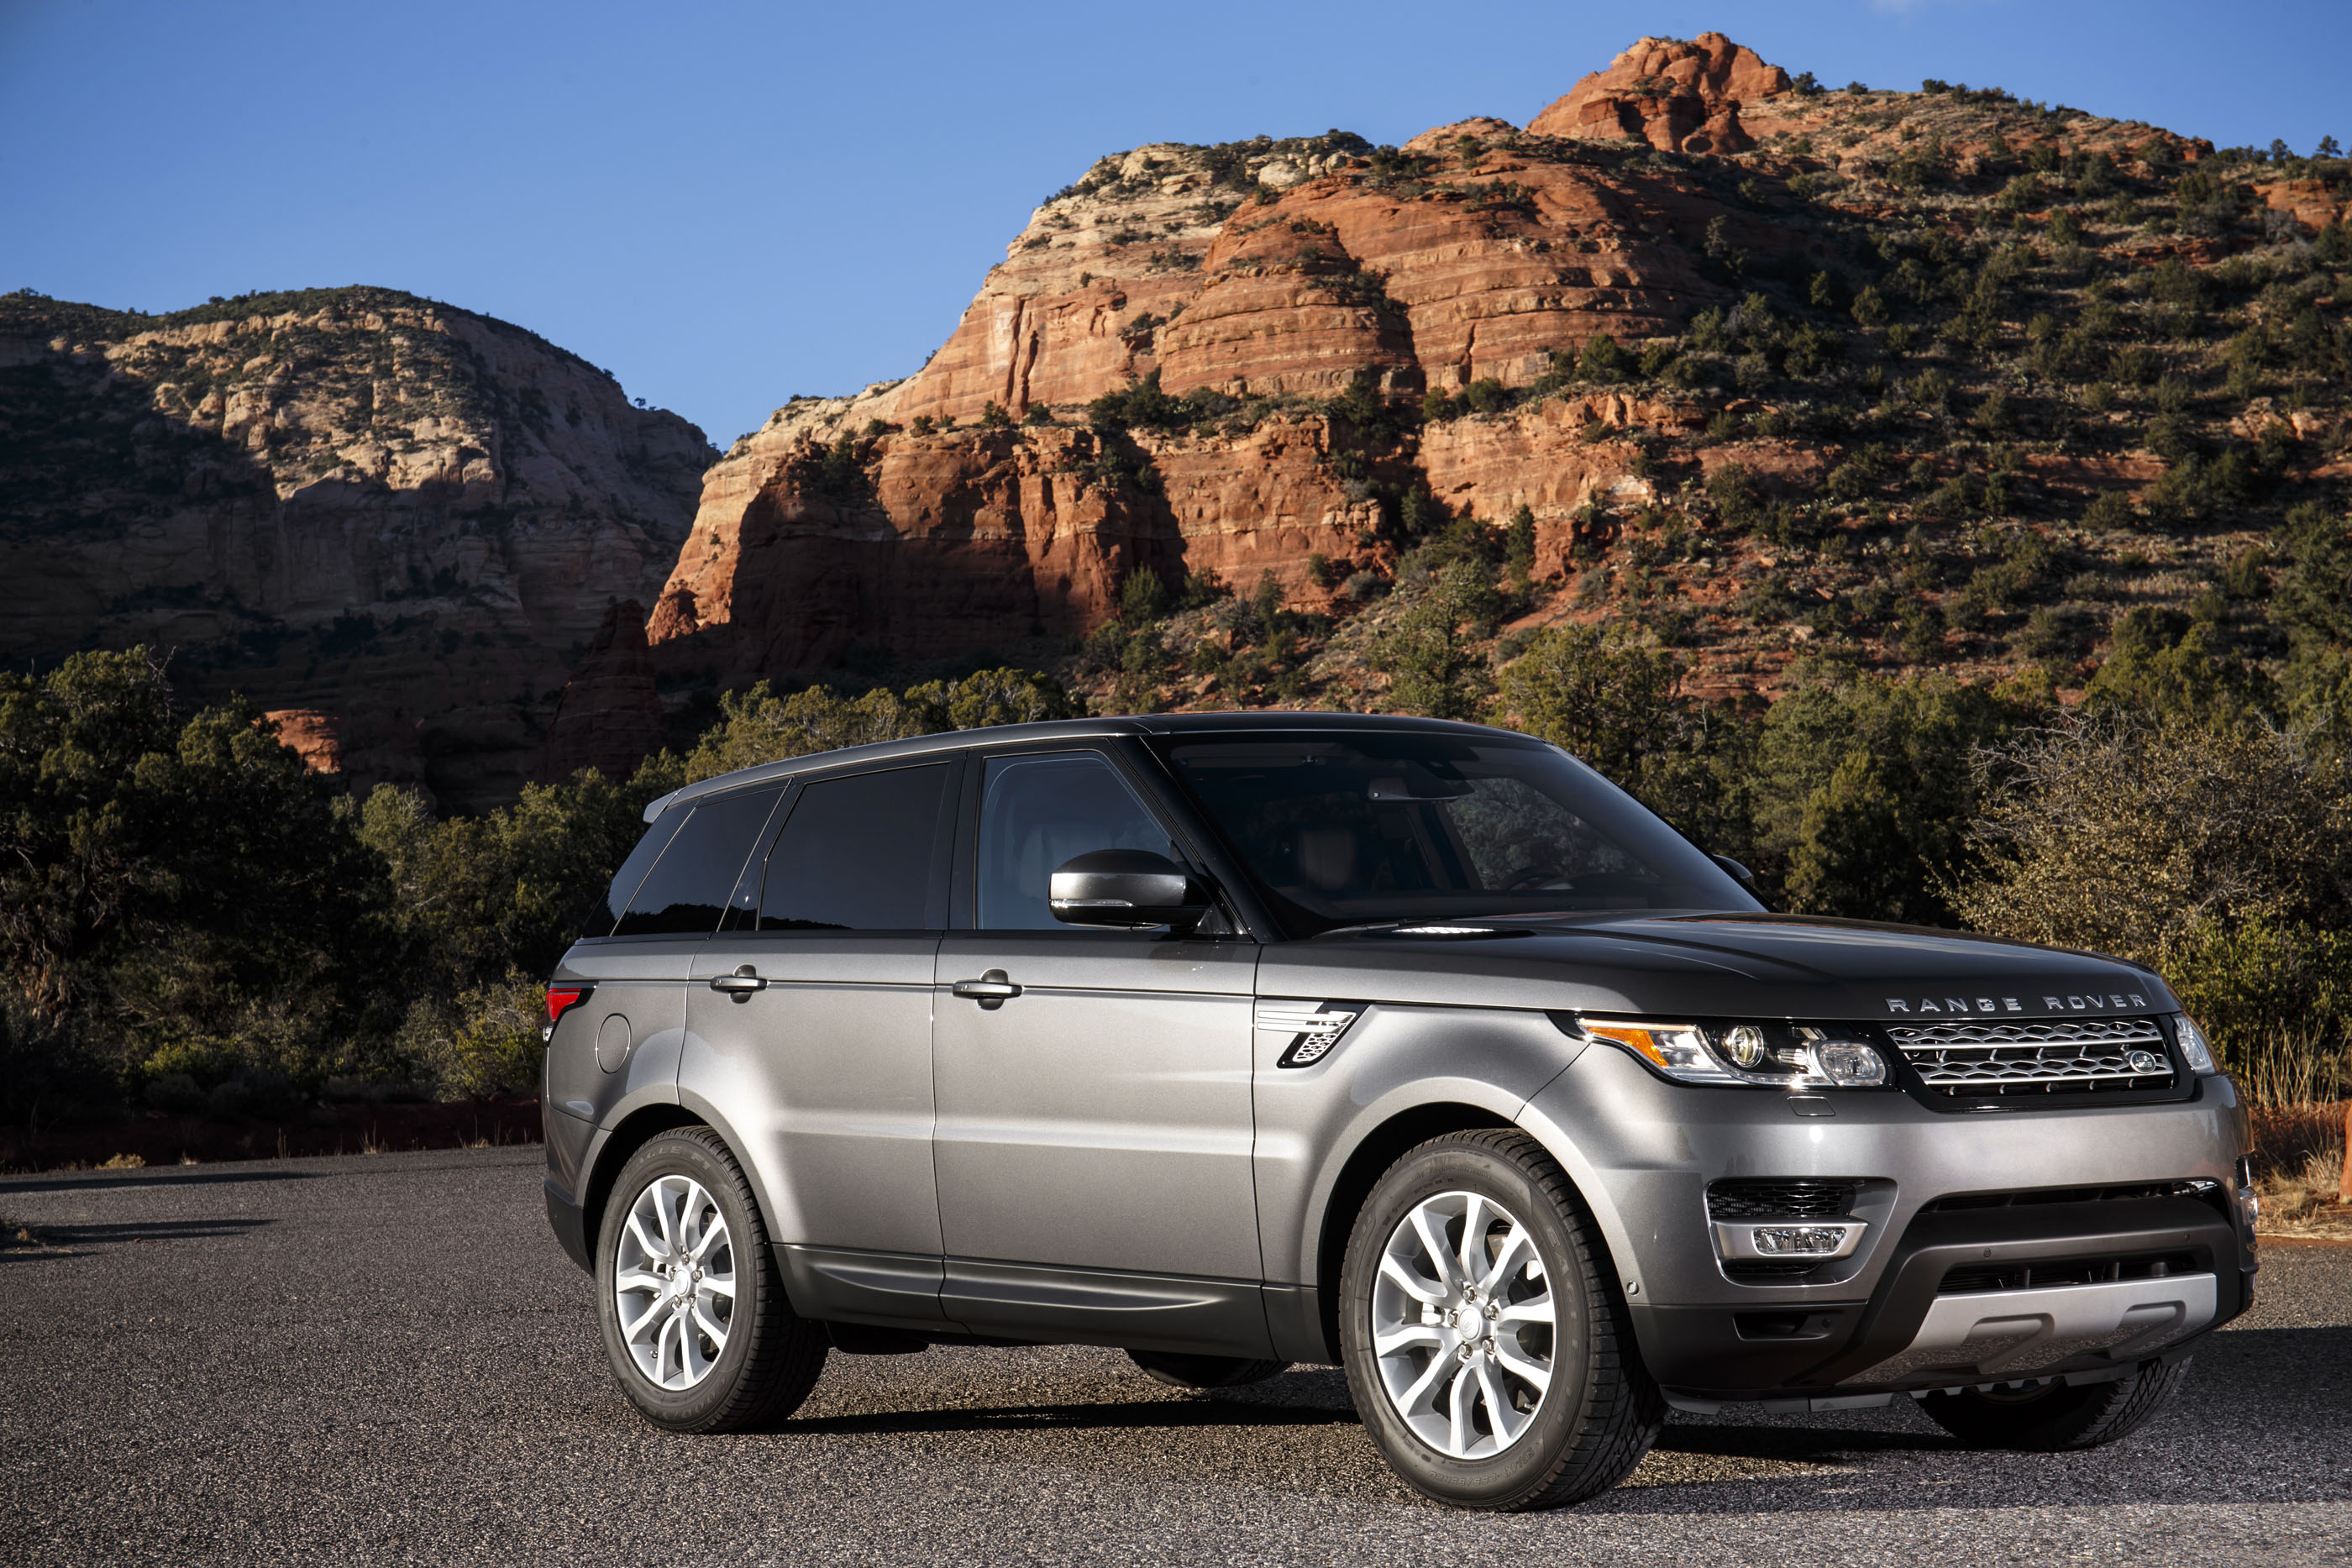 2017 Land Rover Range Rover Sport Gas Mileage The Car Connection